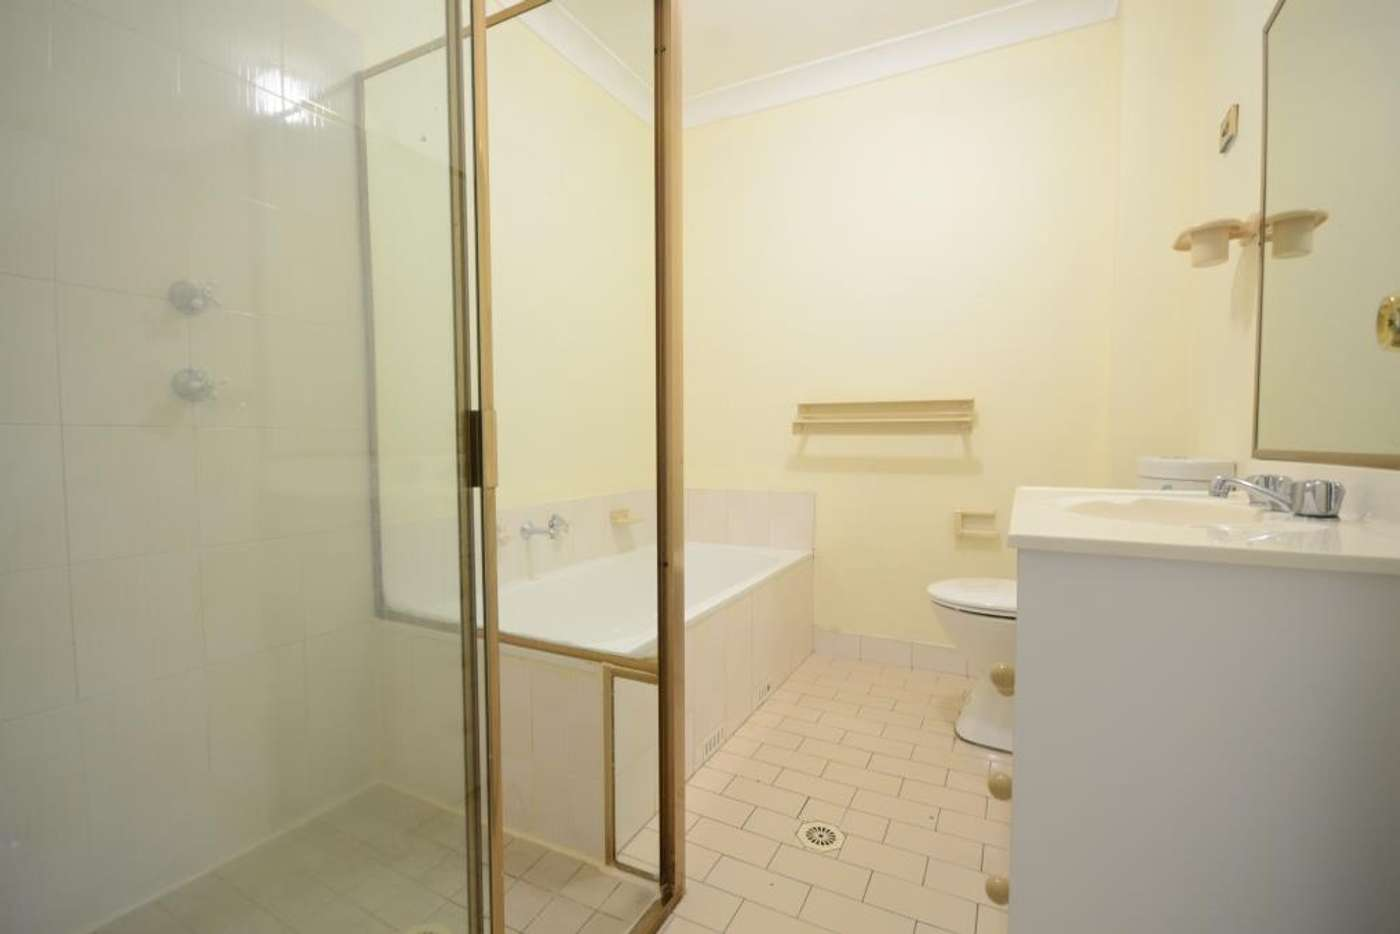 Sixth view of Homely townhouse listing, 4/1 Reid Ave, Westmead NSW 2145